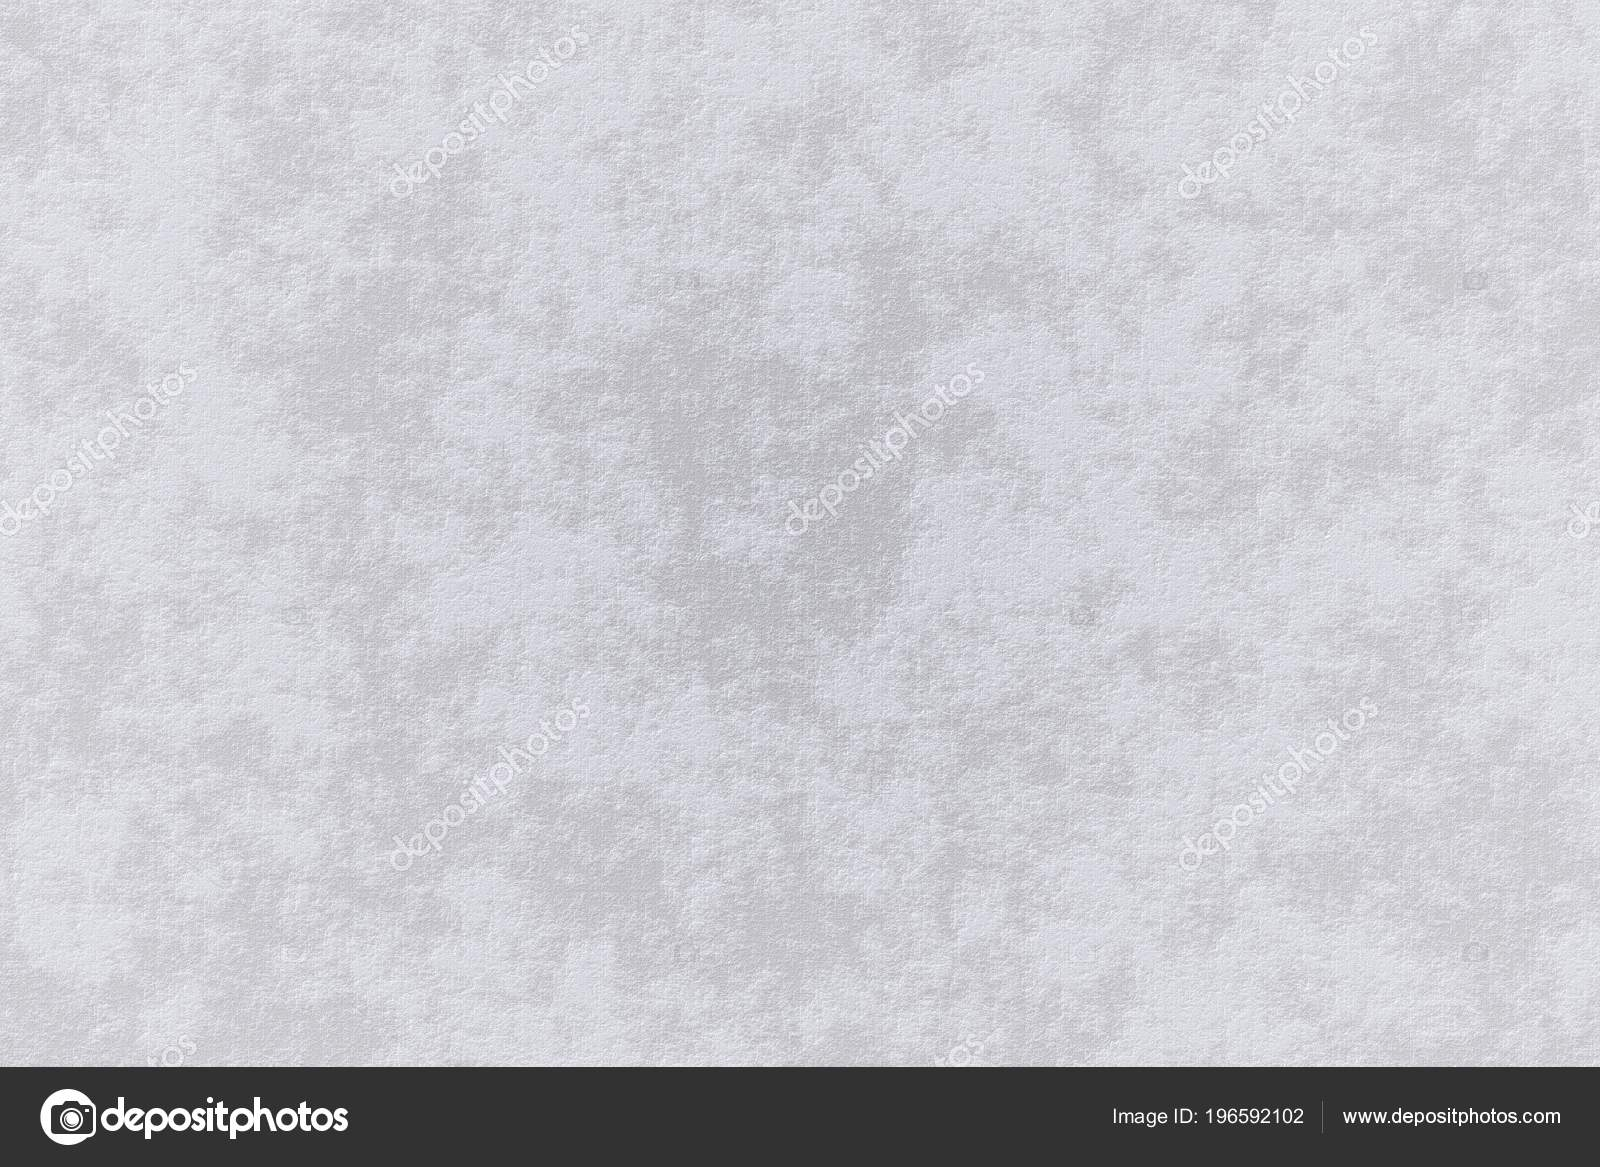 Texture dirty gypsum board wall abstract background